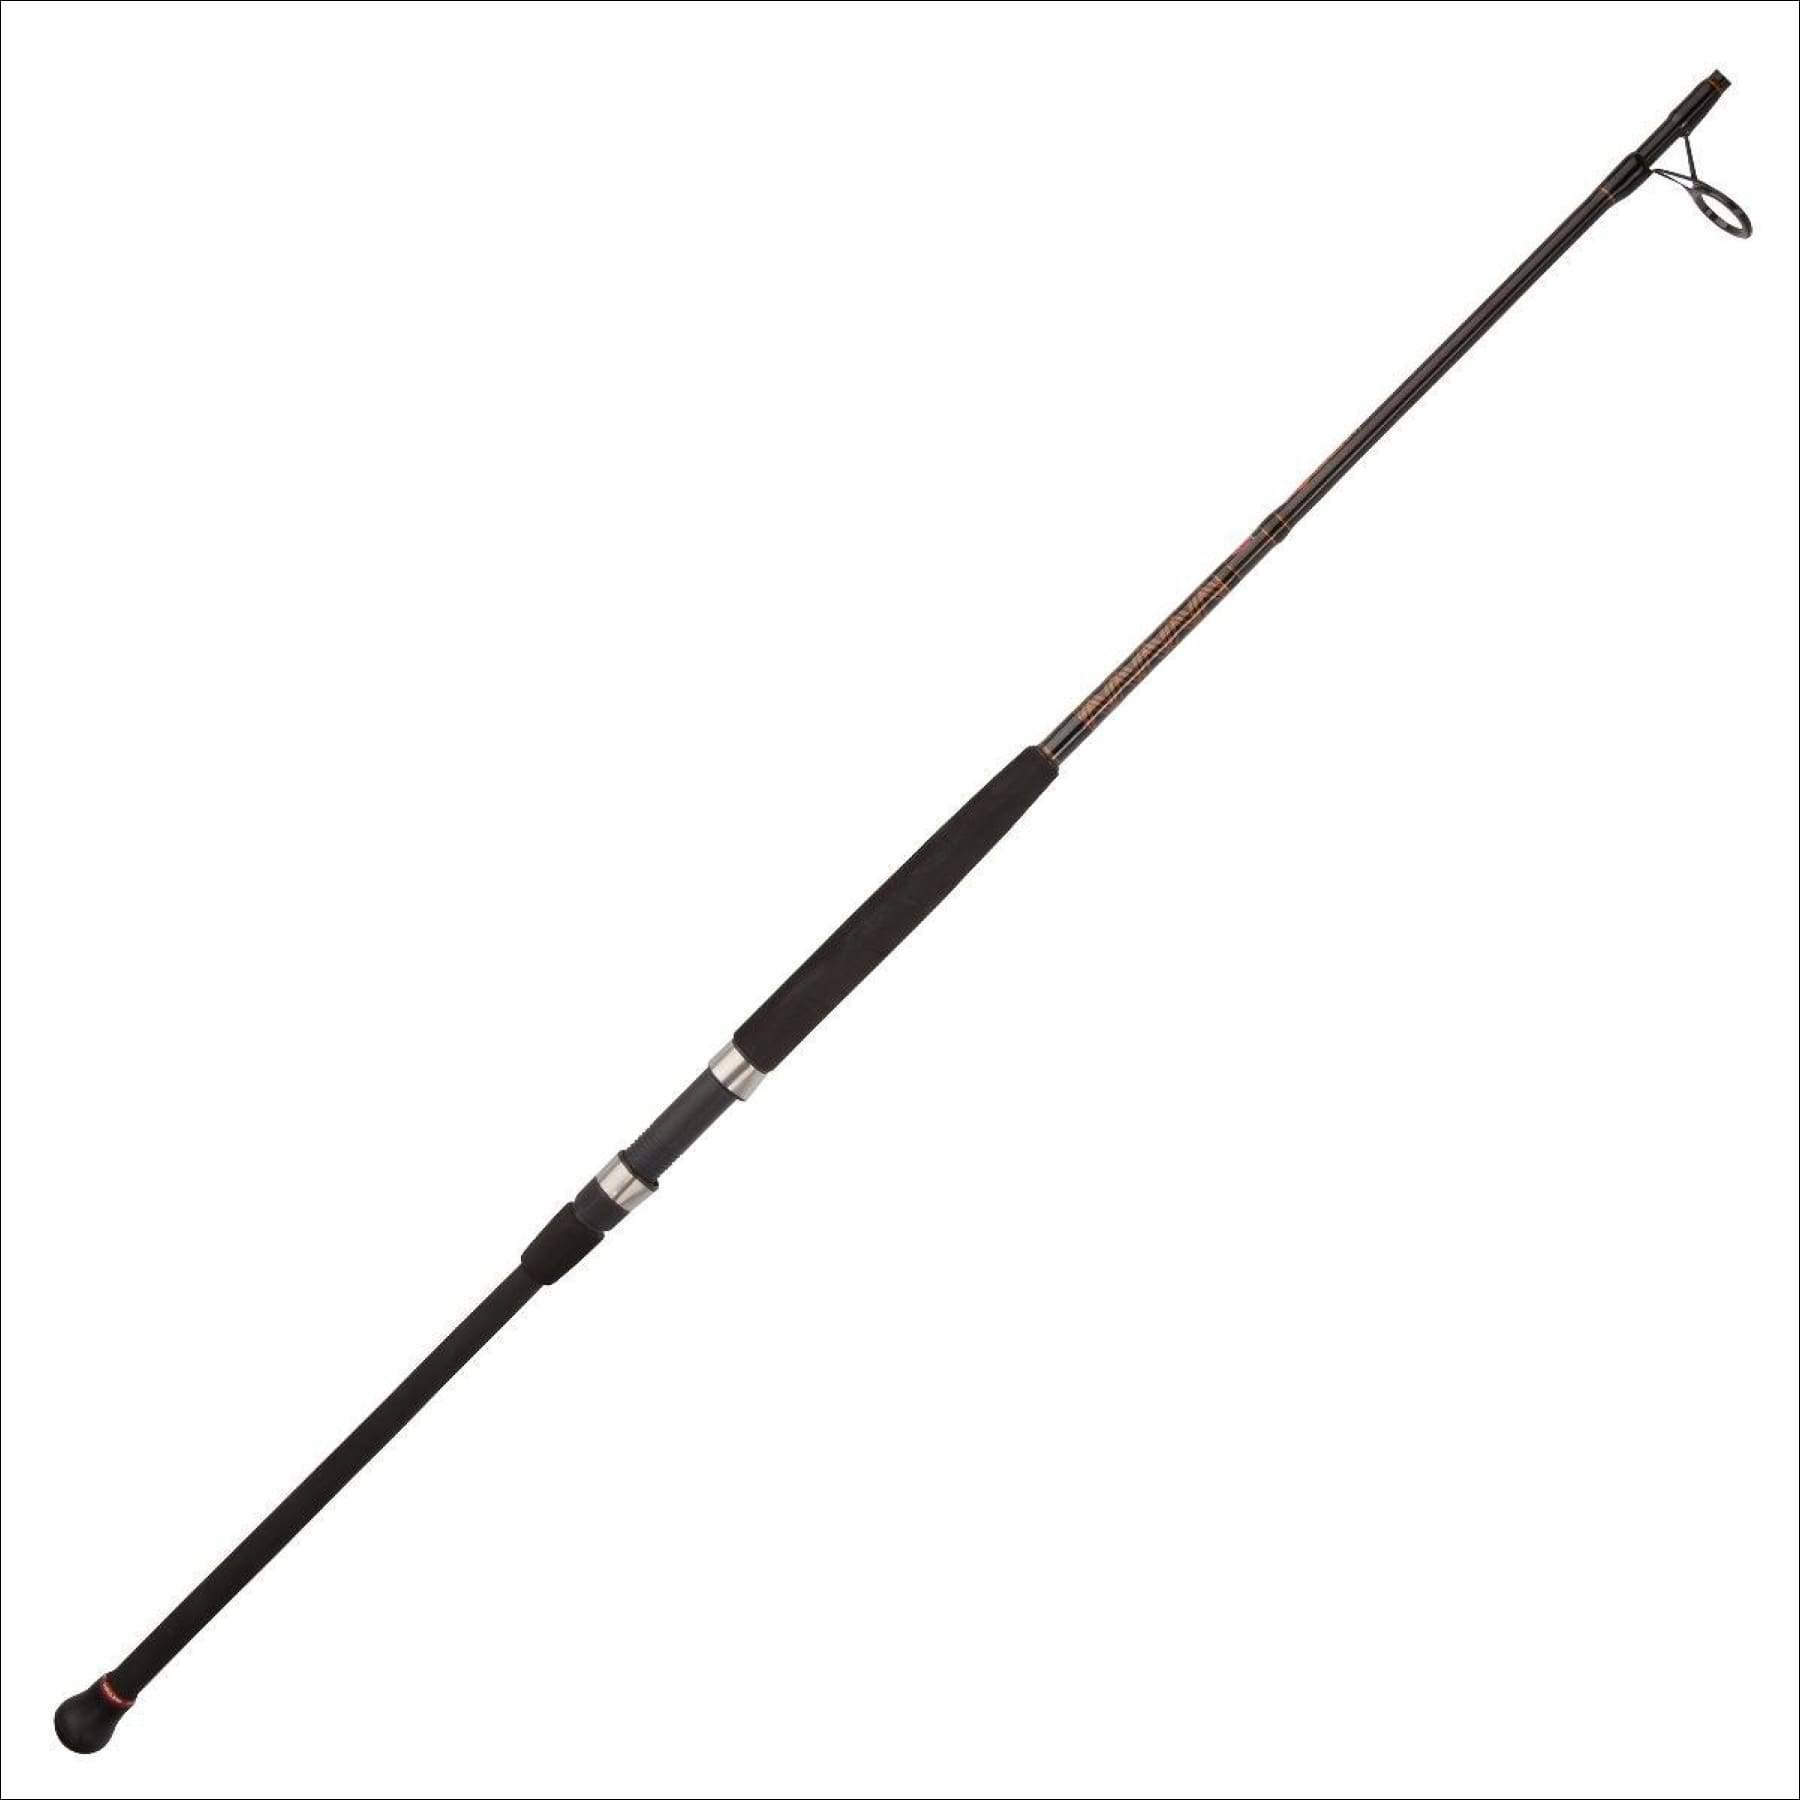 Penn Squadron II Surf Spinning Rod - 15-30lb 10ft SPN - 1404020